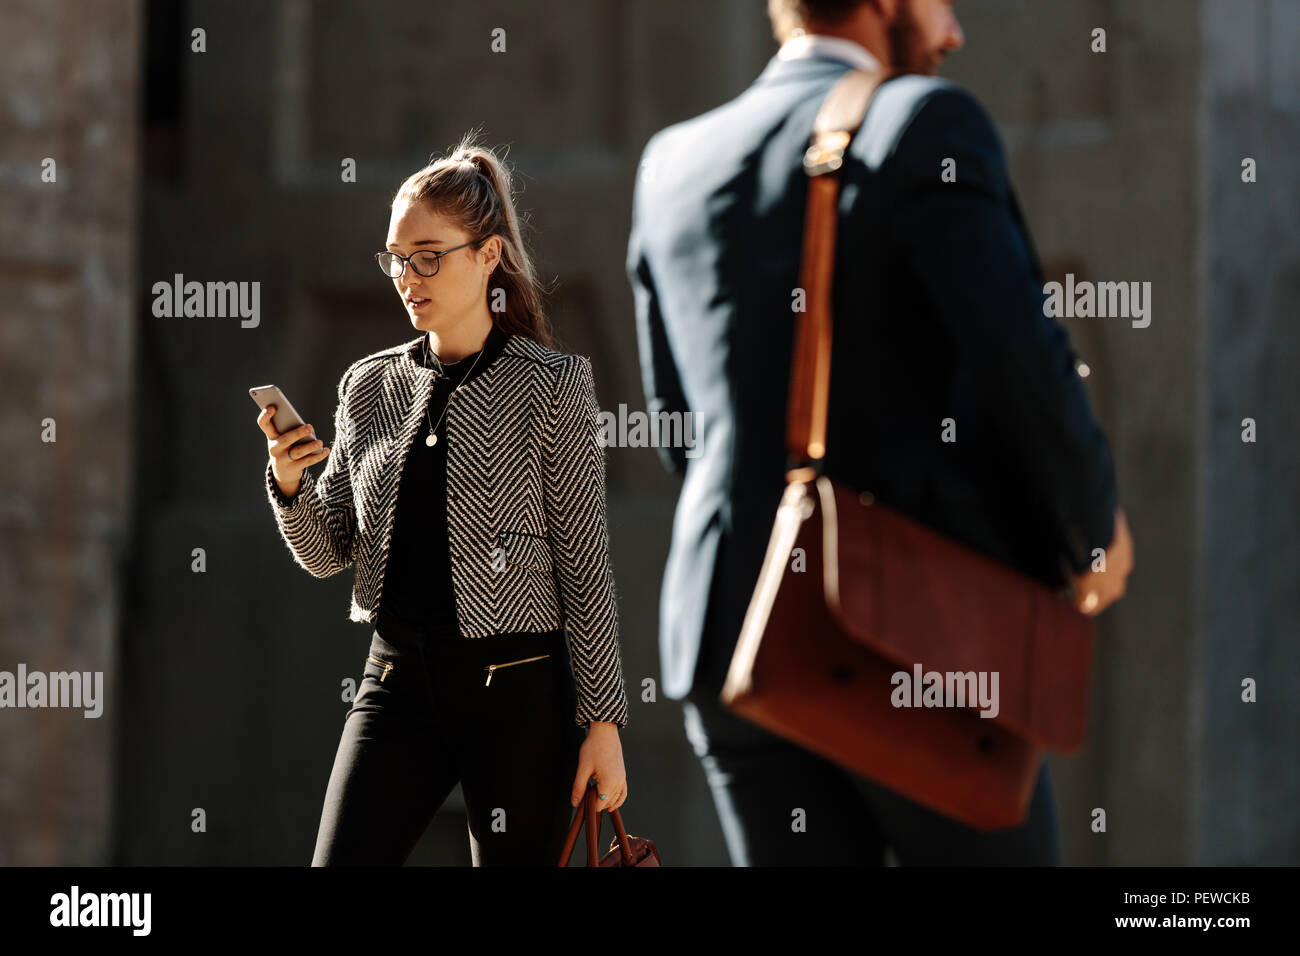 Businesswoman commuting to office in the morning looking at her mobile phone. Business people walking on city street to office carrying their office b - Stock Image